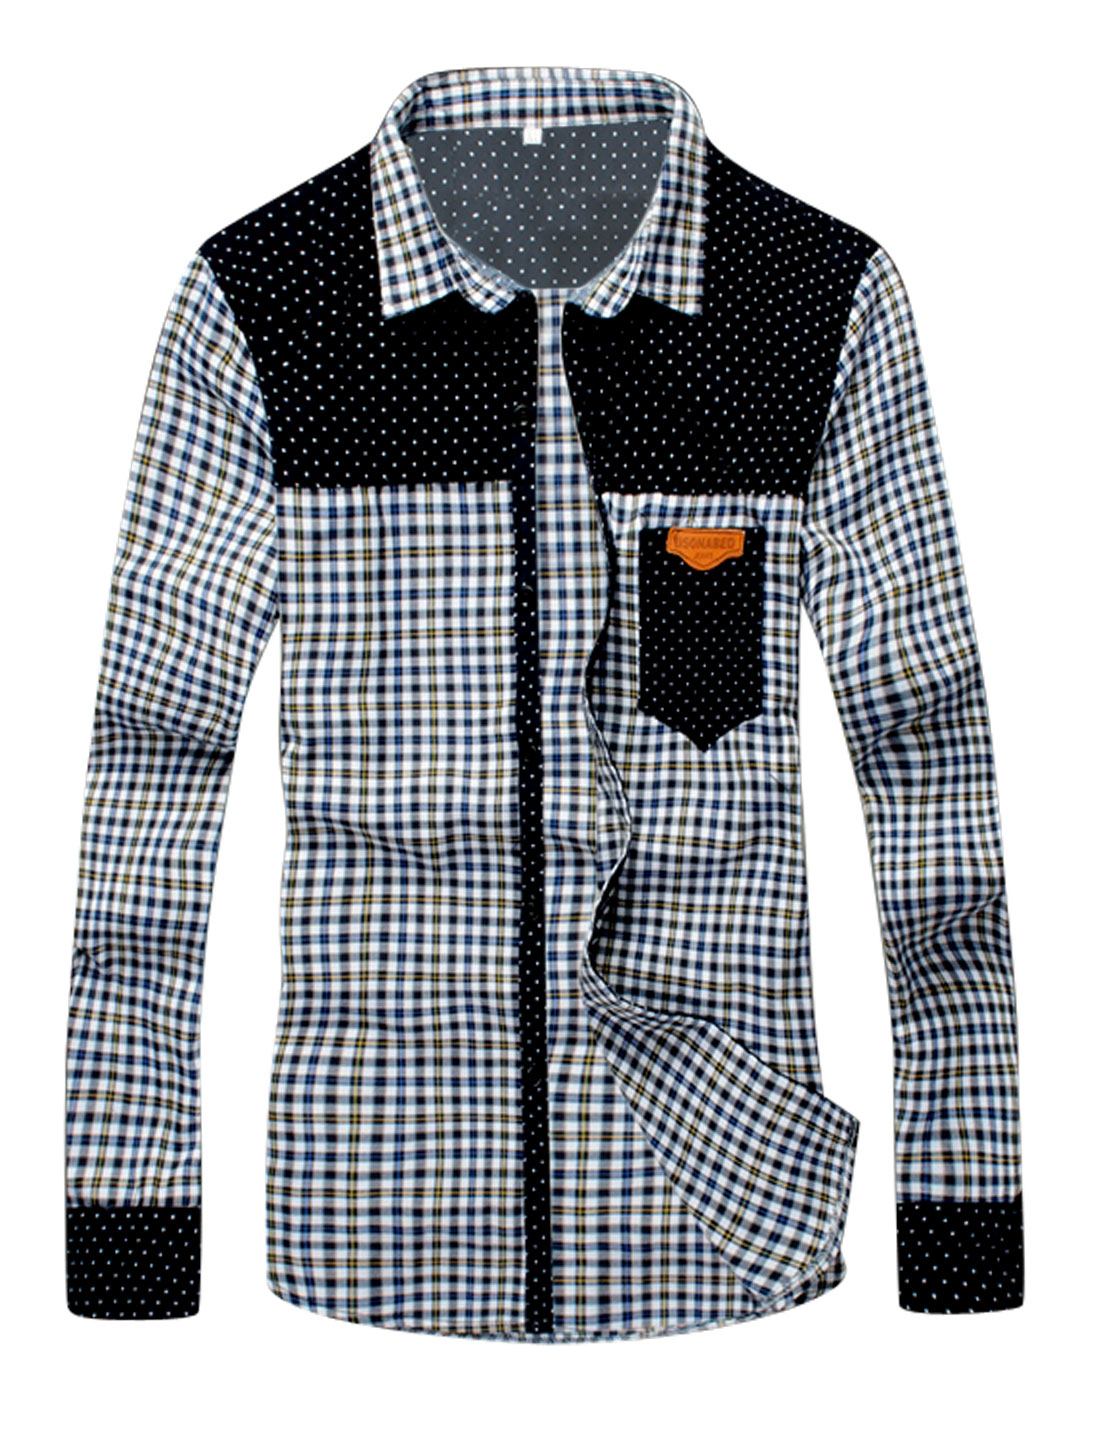 Plaids Panel Button Closure Front Shirt for Men Yellow White S